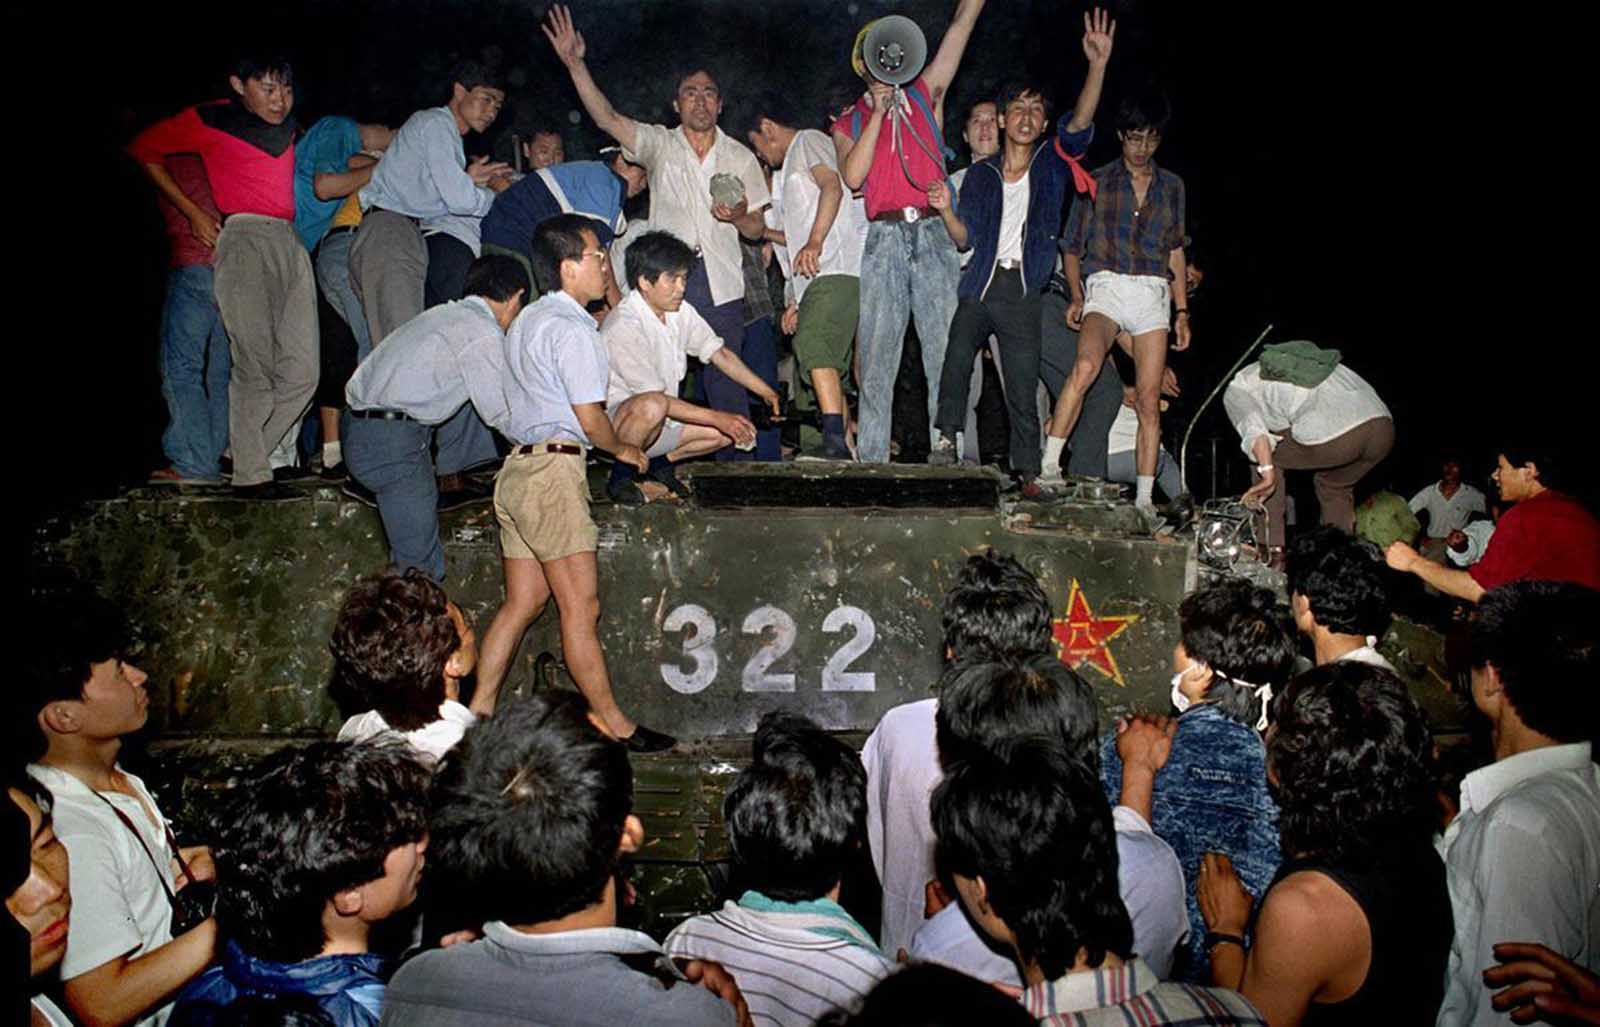 Civilians hold rocks as they stand on a government armored vehicle near Chang'an Boulevard in Beijing, early on June 4, 1989. Violence escalated between pro-democracy protesters and Chinese troops, leaving hundreds dead overnight.